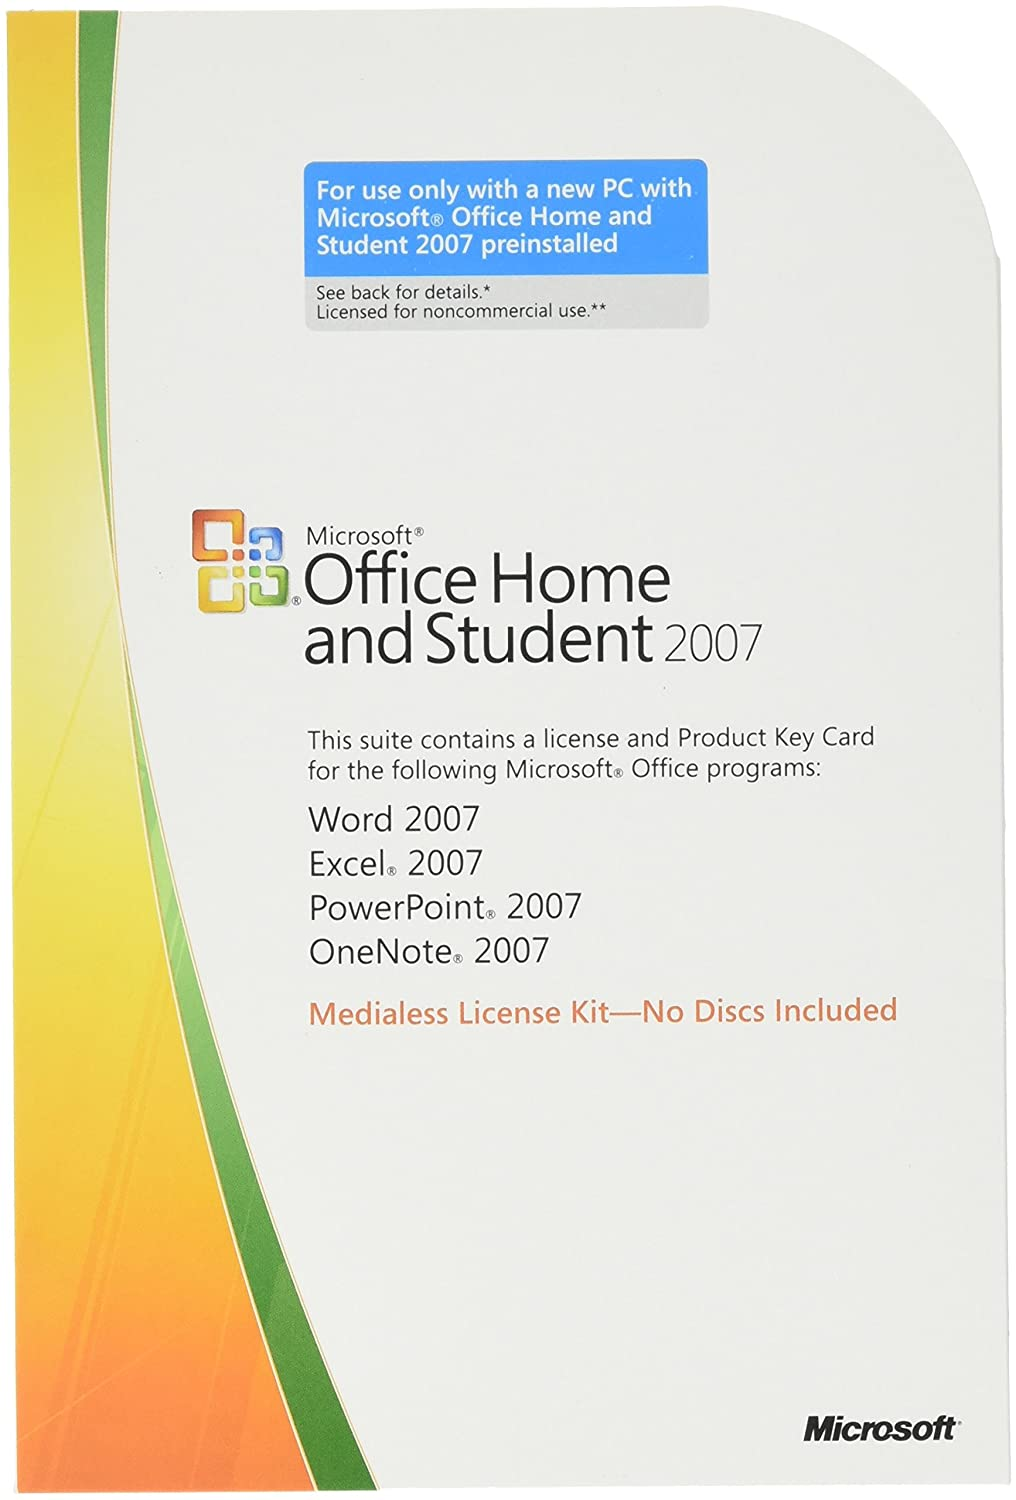 Microsoft OEM Office Home and Student 2007, 1 pack